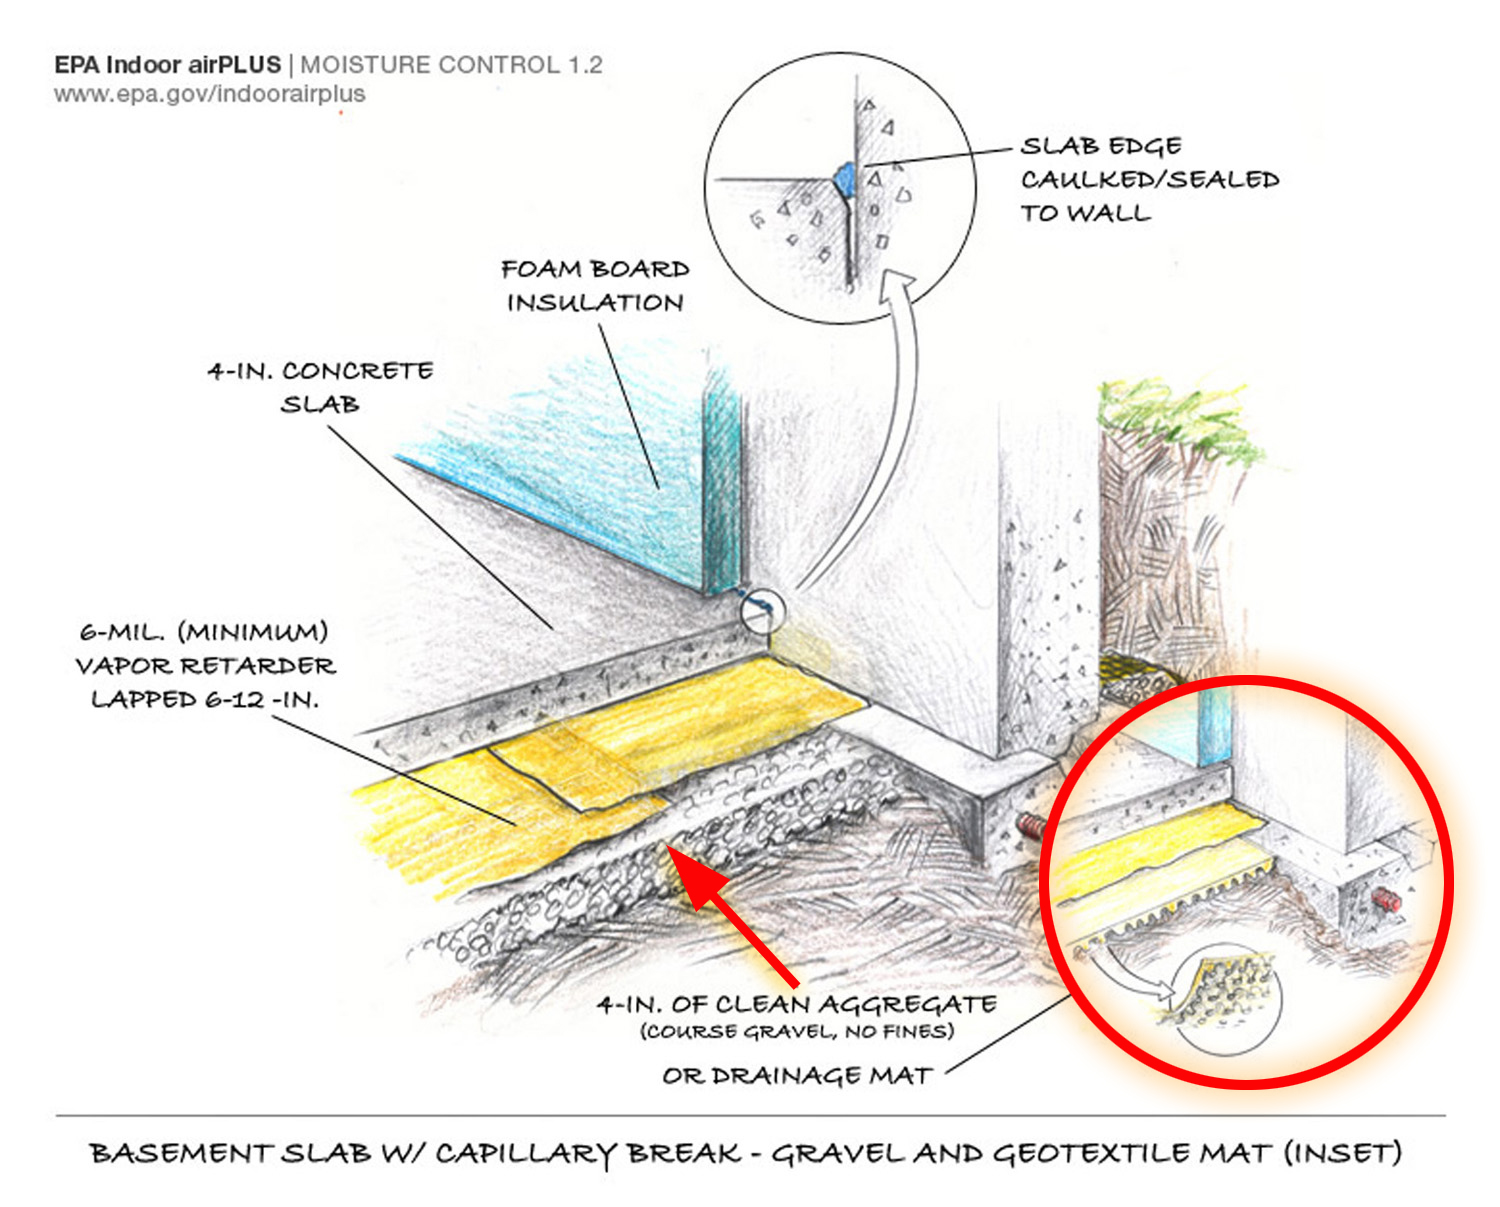 Basement slab. This image show both approaches to creating a successful capillary break using aggregate and also sand with a geotextile mat